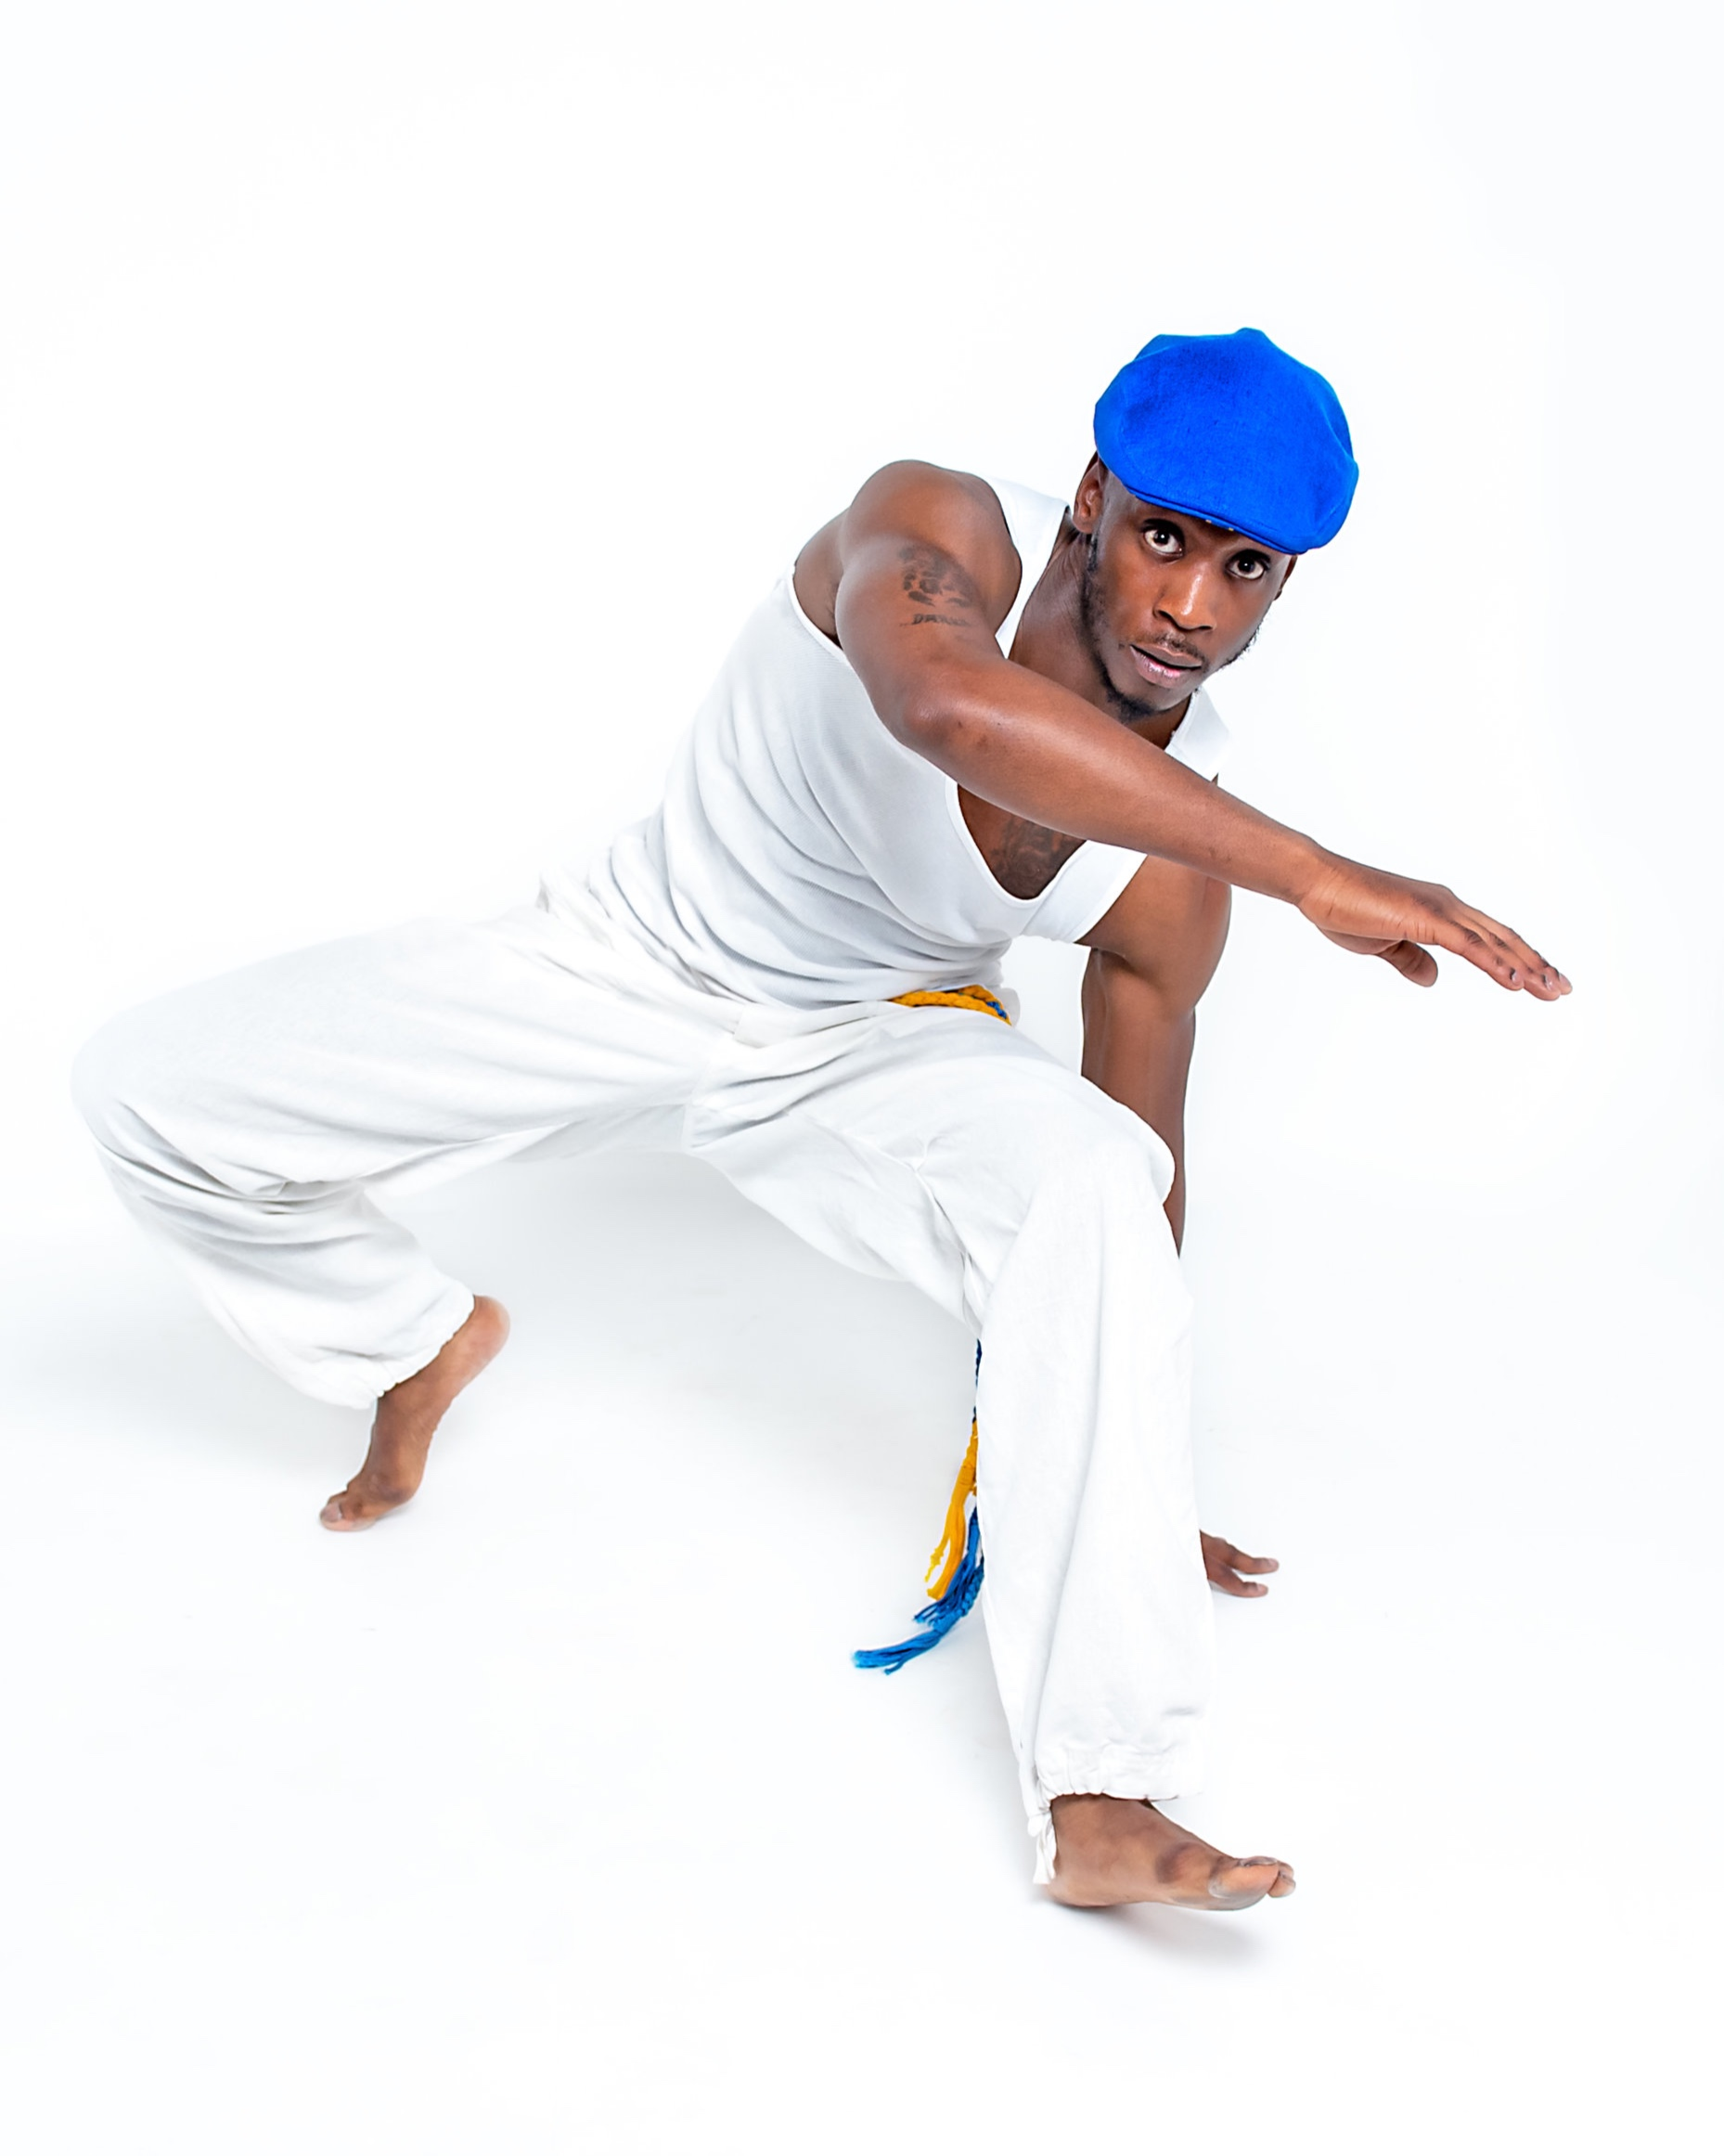 Dancer Jerome Wilks in our Kariwak Blue Linen cap                       Photography Ant Robling